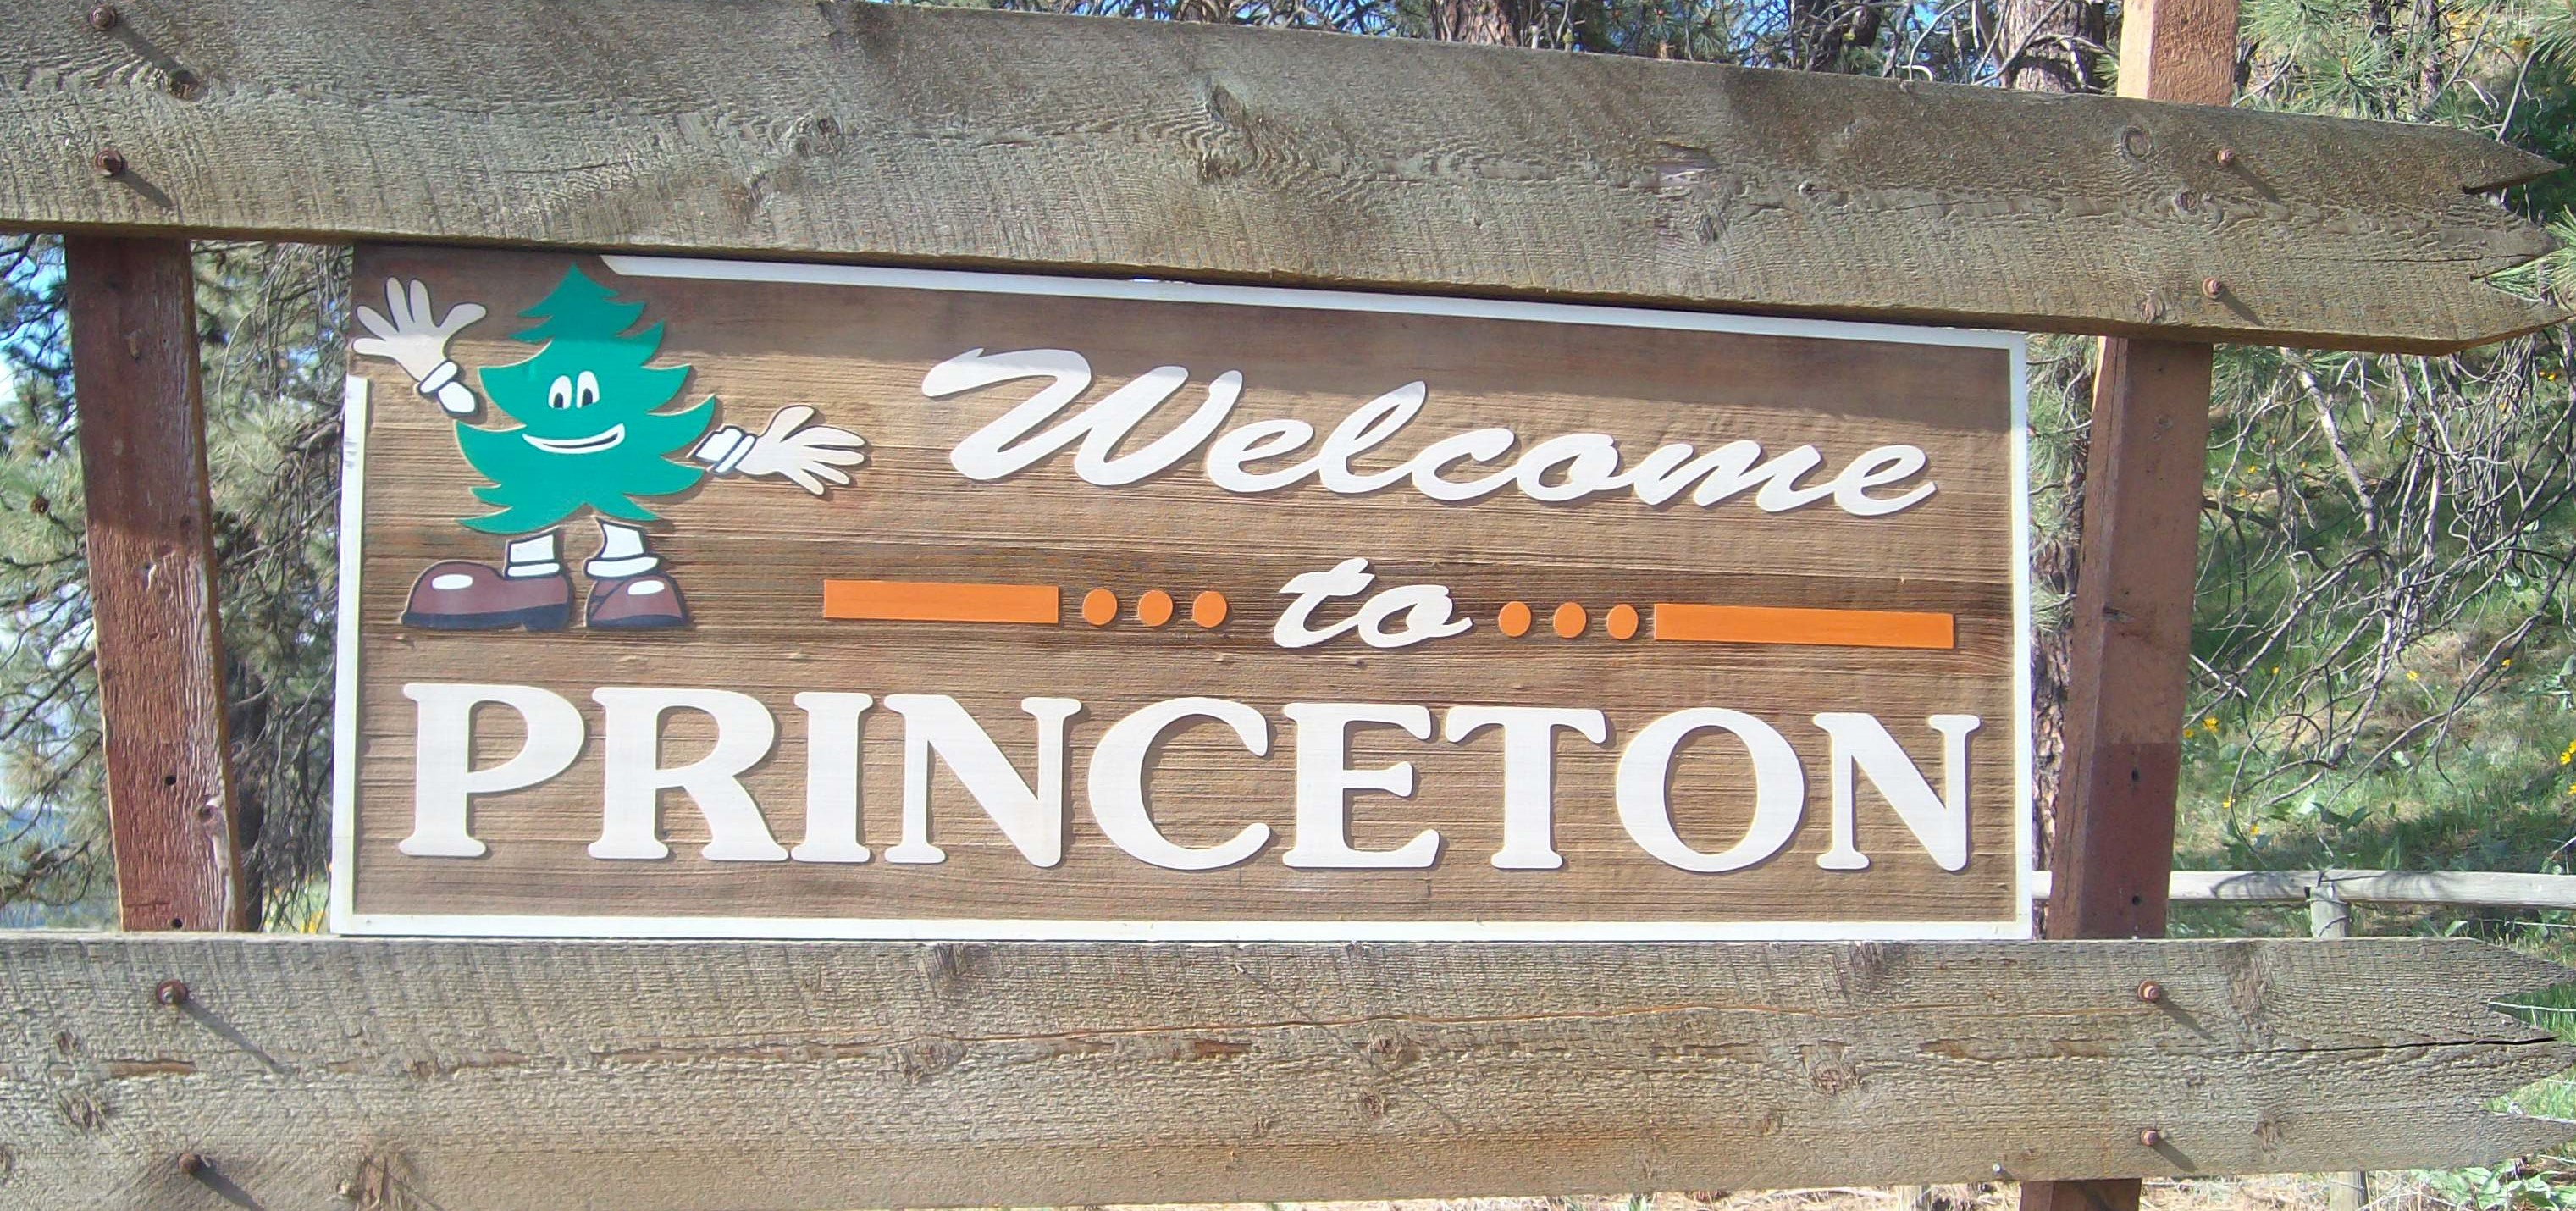 Welcome sign for Princeton, British Columbia, Canada. One of the cities we service in the Okanagan-Similkameen.